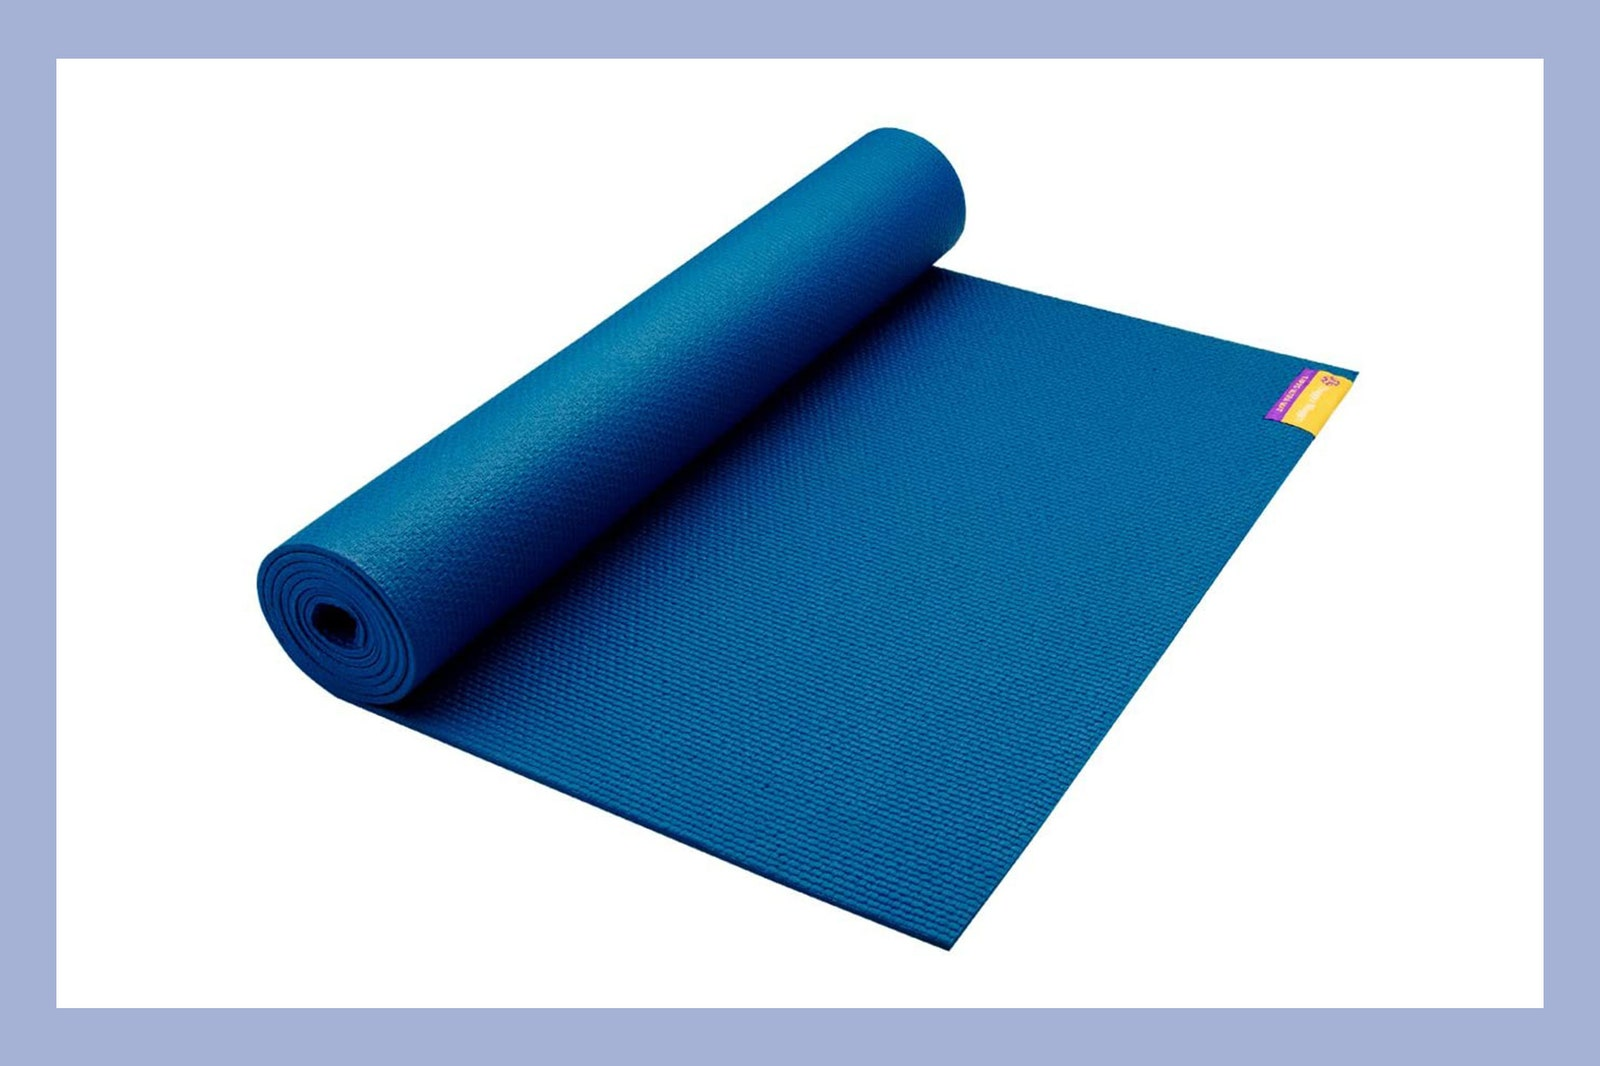 Yoga Exercise Coverings For Convenience And Warmth